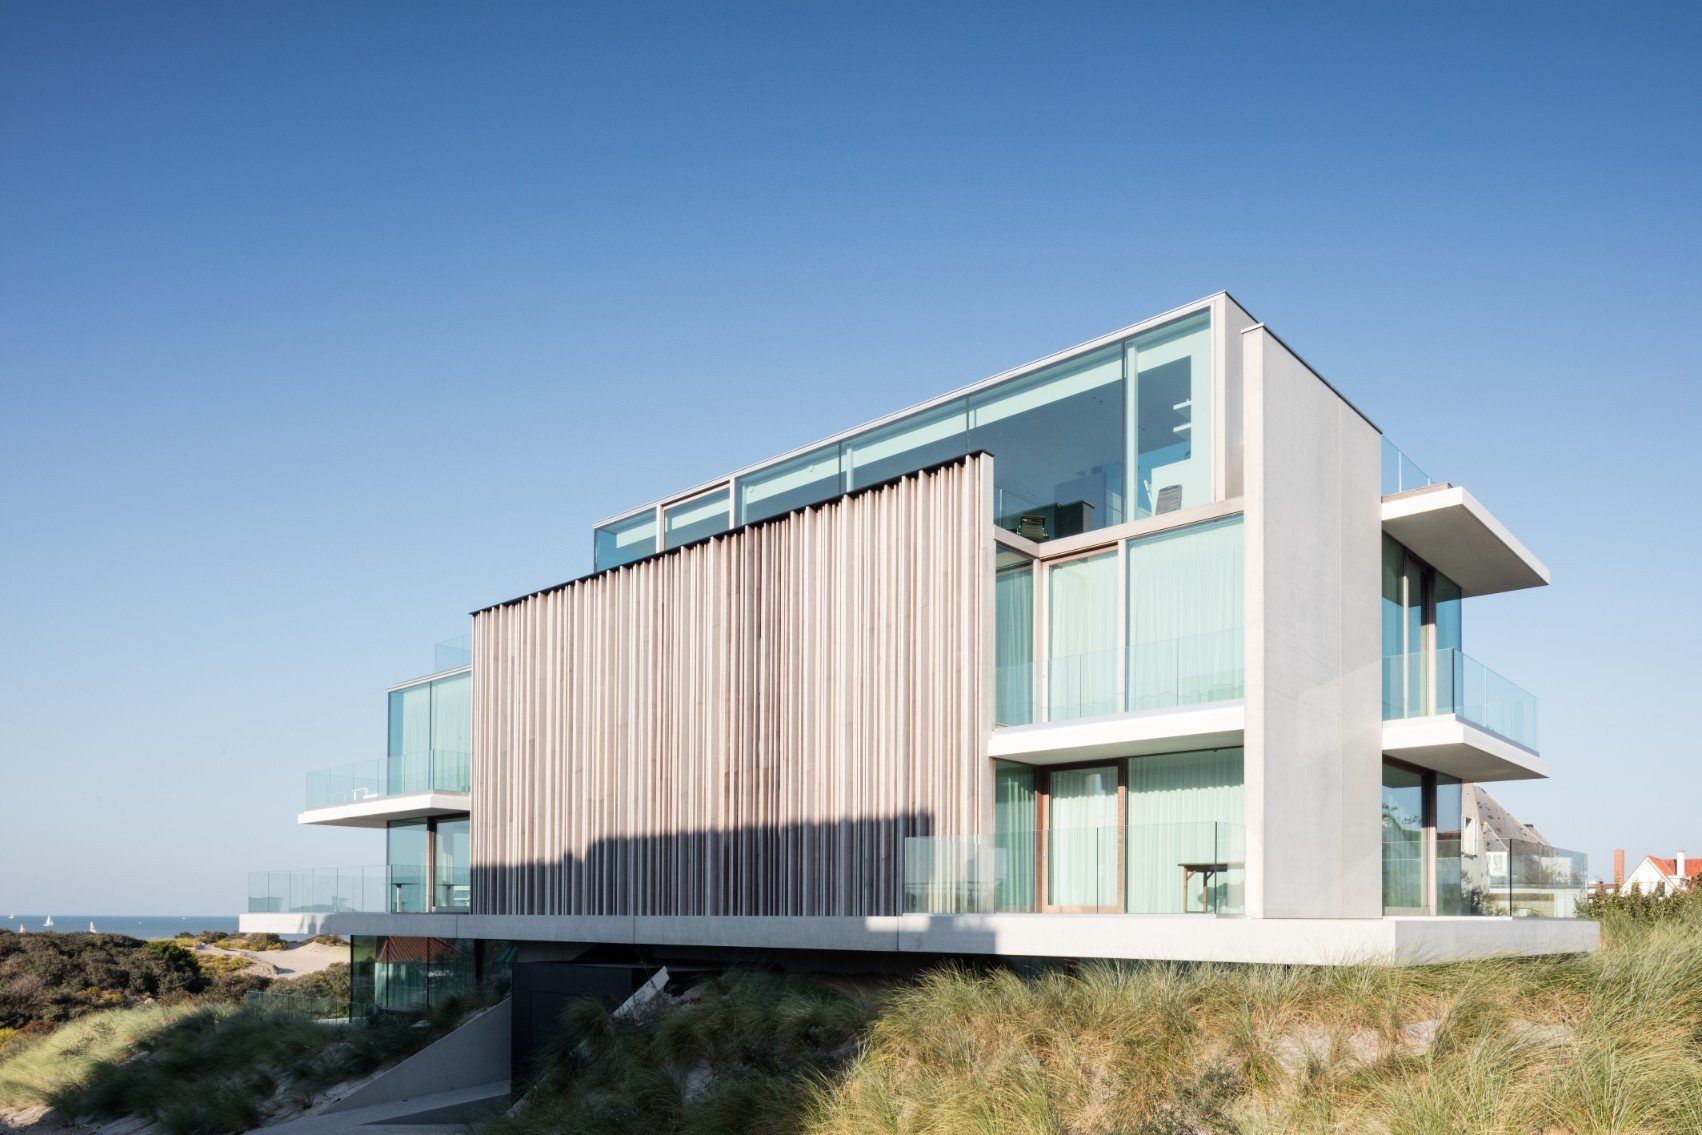 Rietveldprojects-Residence-ON-appartement-design-architectuur-kust-tvdv5